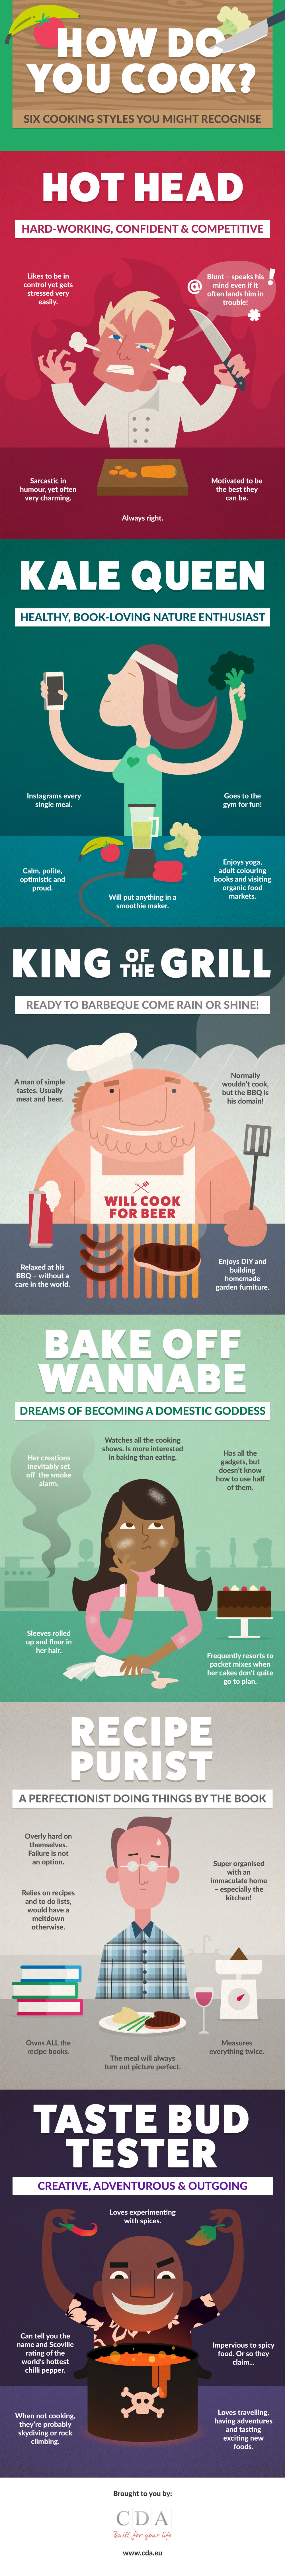 Which Type Of Cook Are You? - Infographic